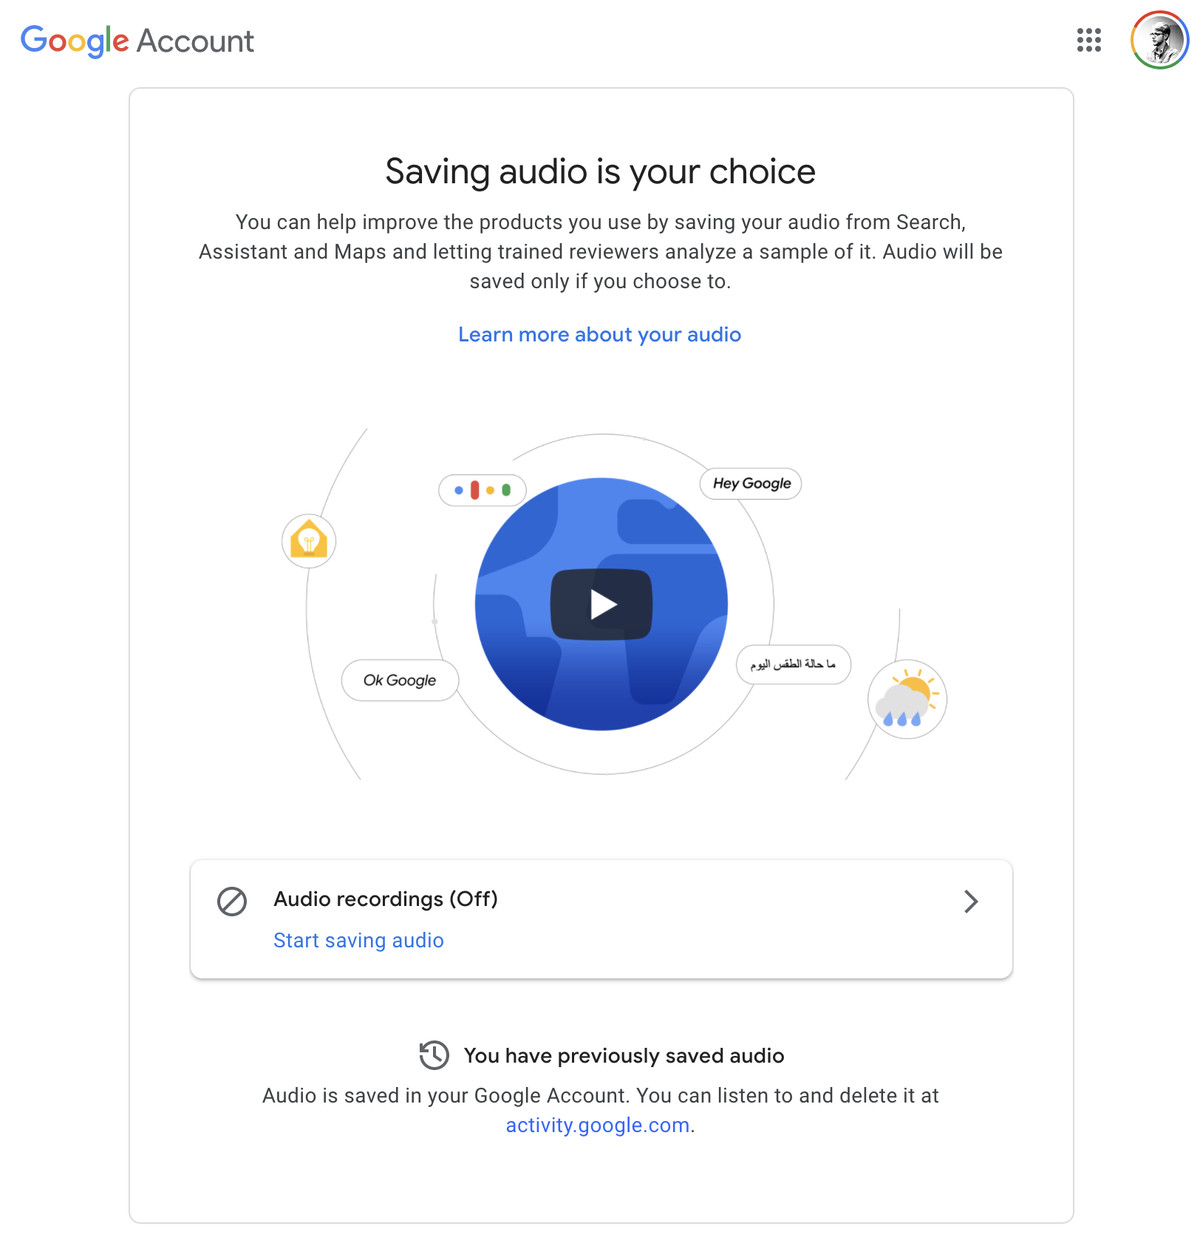 Google's website for opting back in to having audio recordings saved